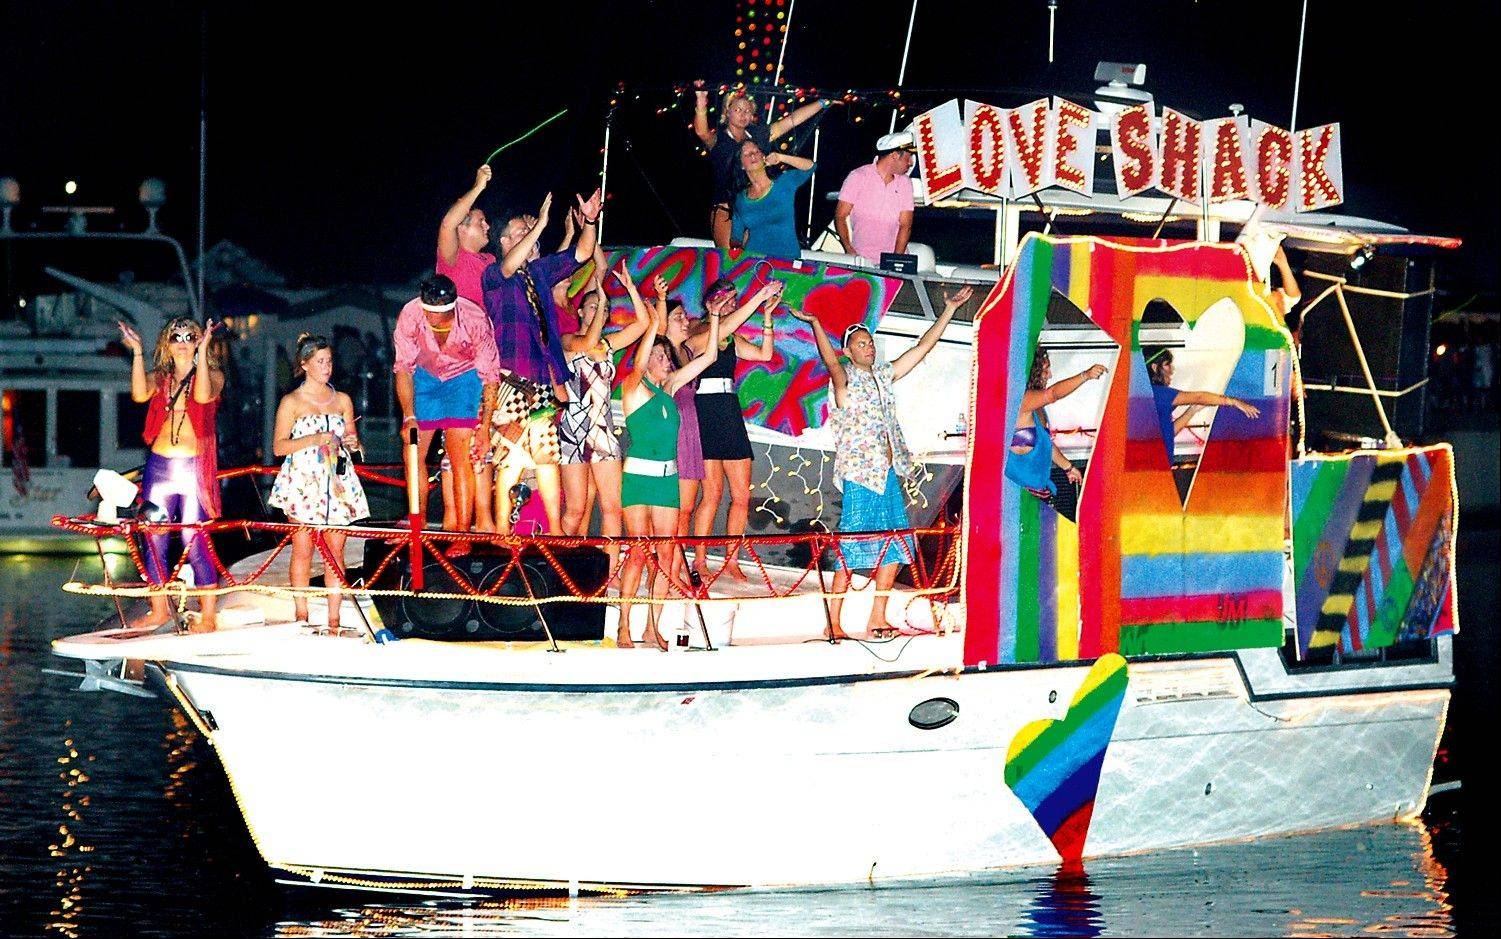 The yacht Splash Dance is transformed into a Love Shack for the Ship & Shore Festival Lighted Boat Parade in New Buffalo, Mich.